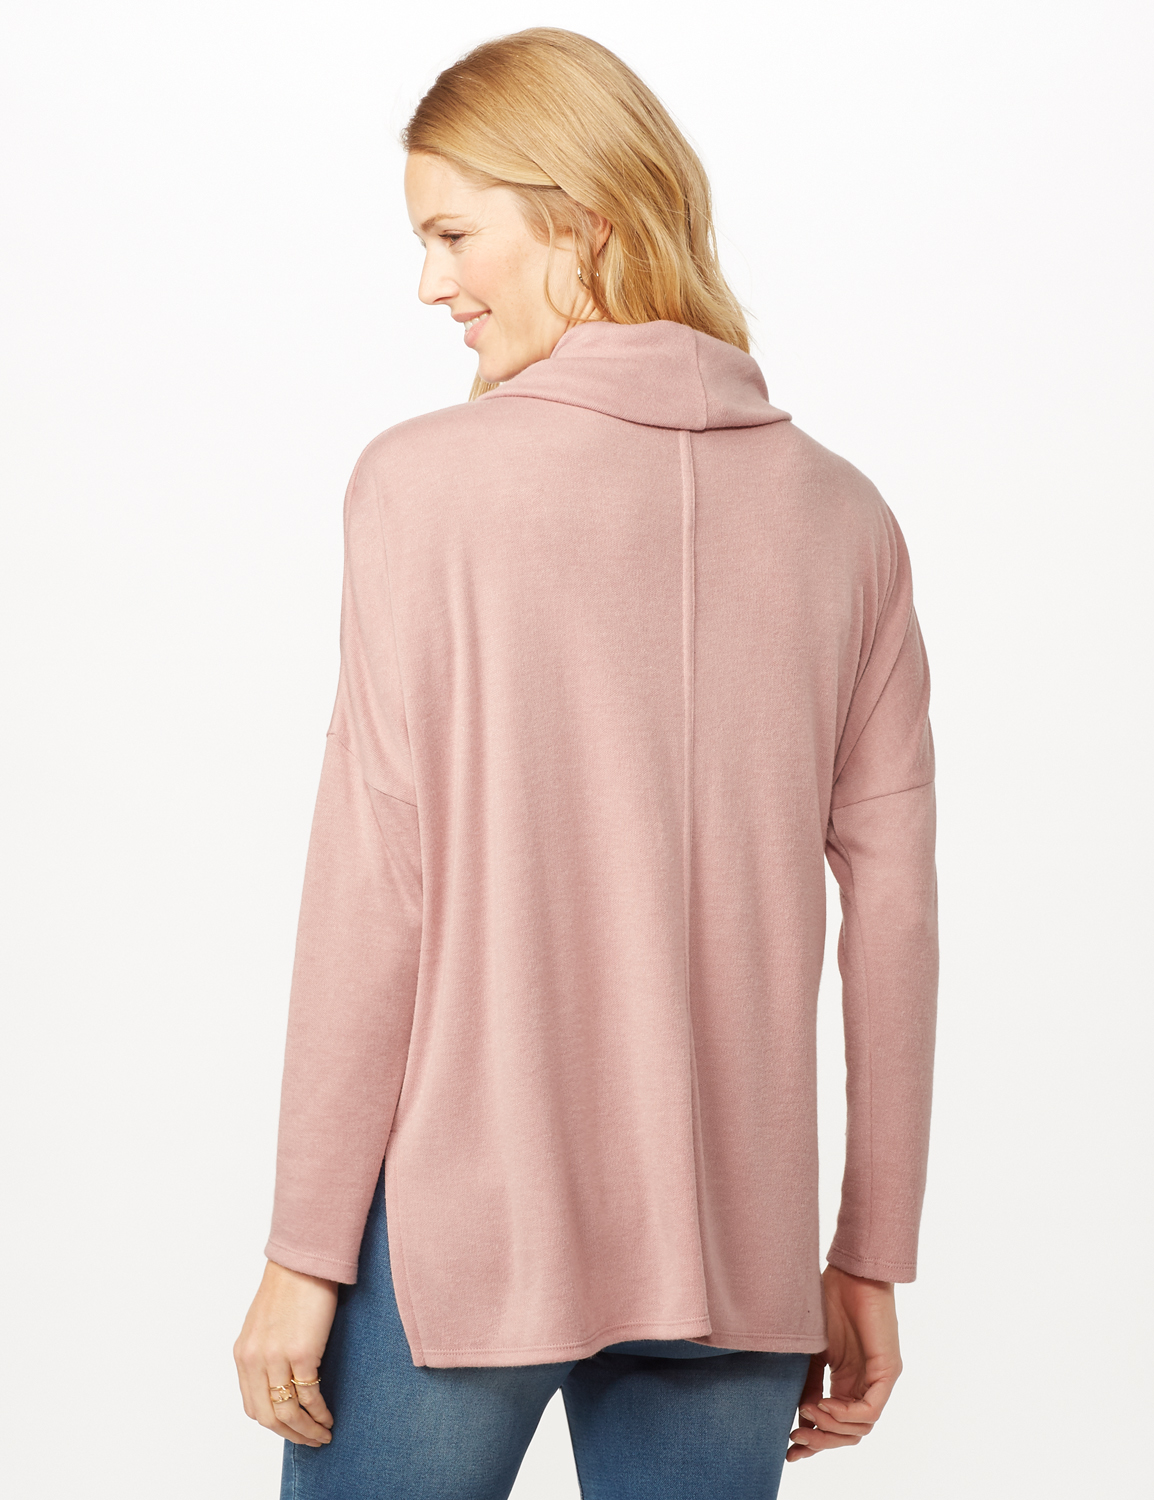 Cowl Neck Hi-Low Knit Top -Dusty Rose - Back